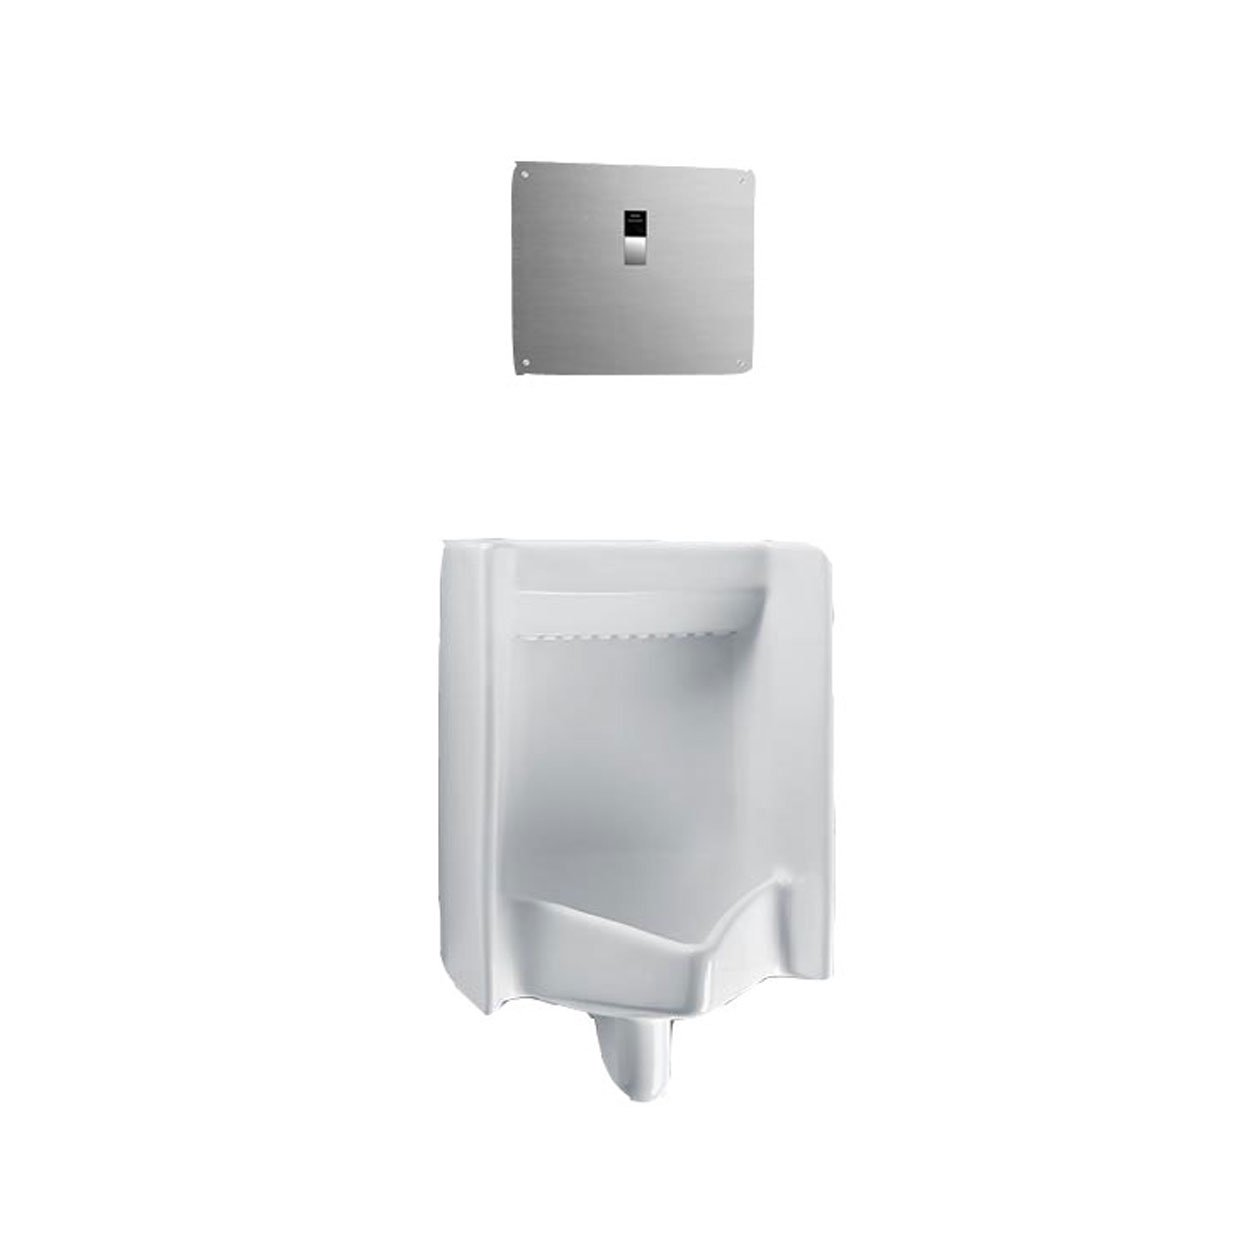 Toto UT445UV#01 Commercial Washout High Efficiency 0.125 GPF Cal-Green Urinal with Back Spud, White White by TOTO